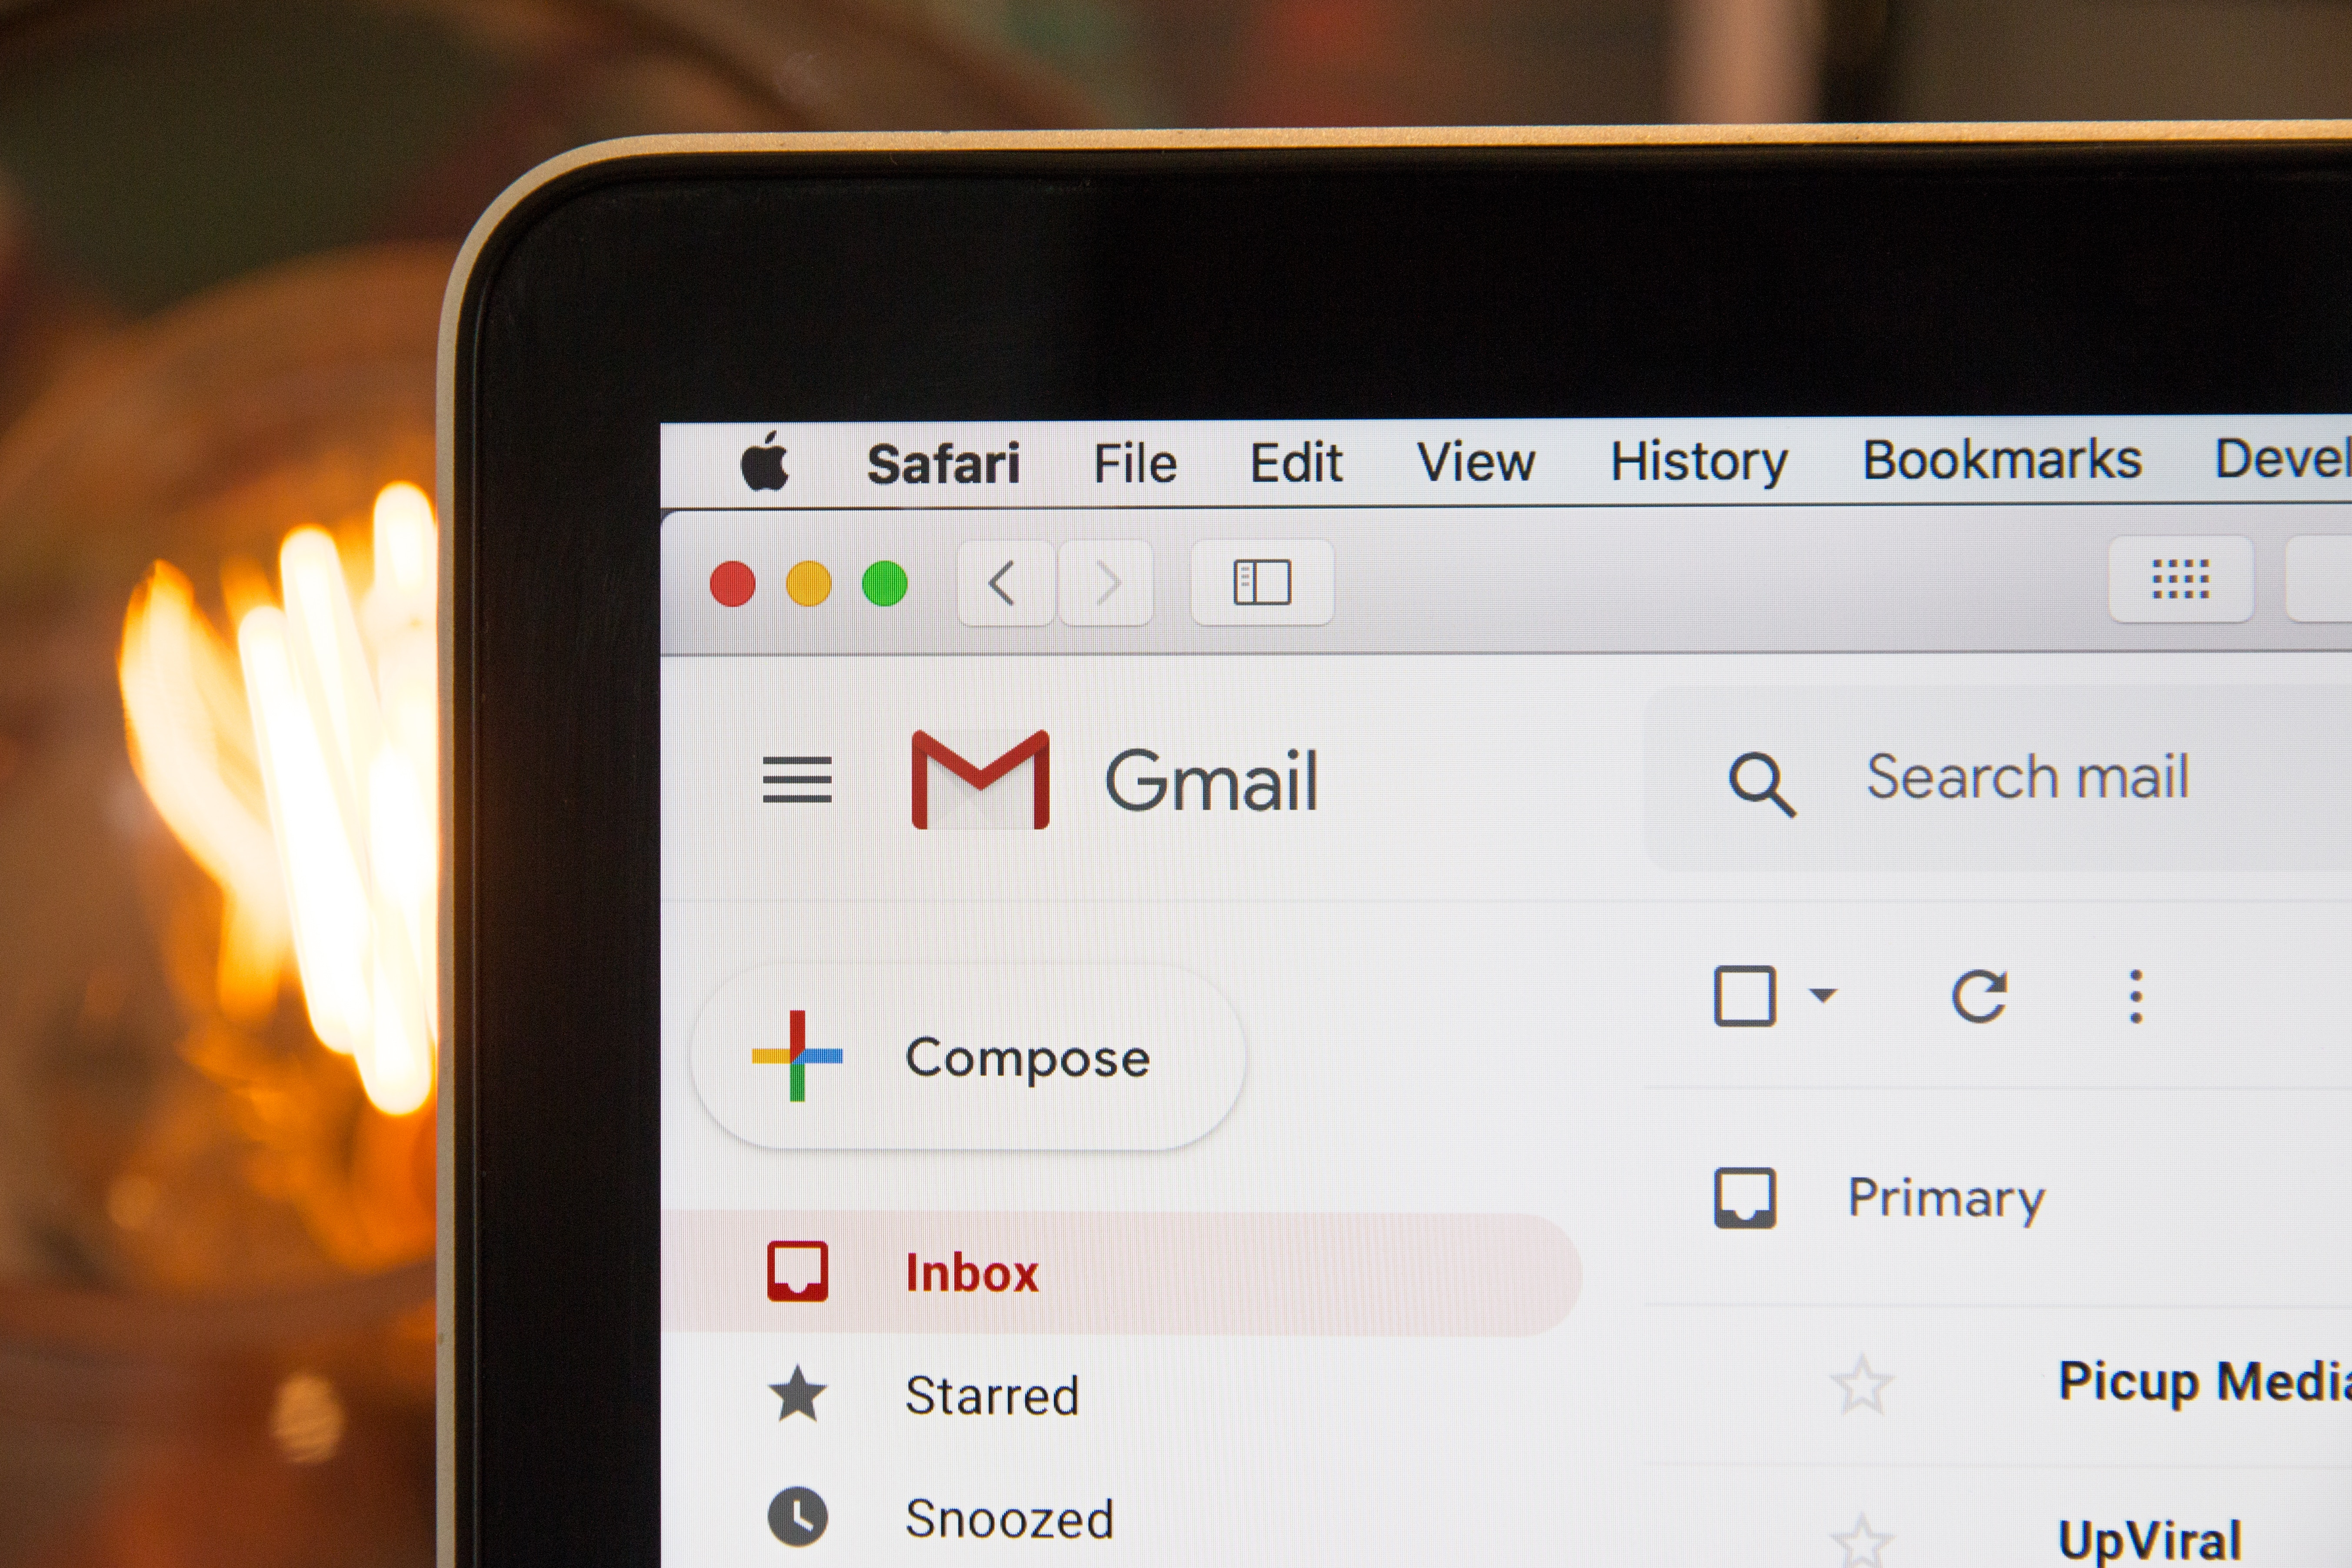 Gmail open on a laptop